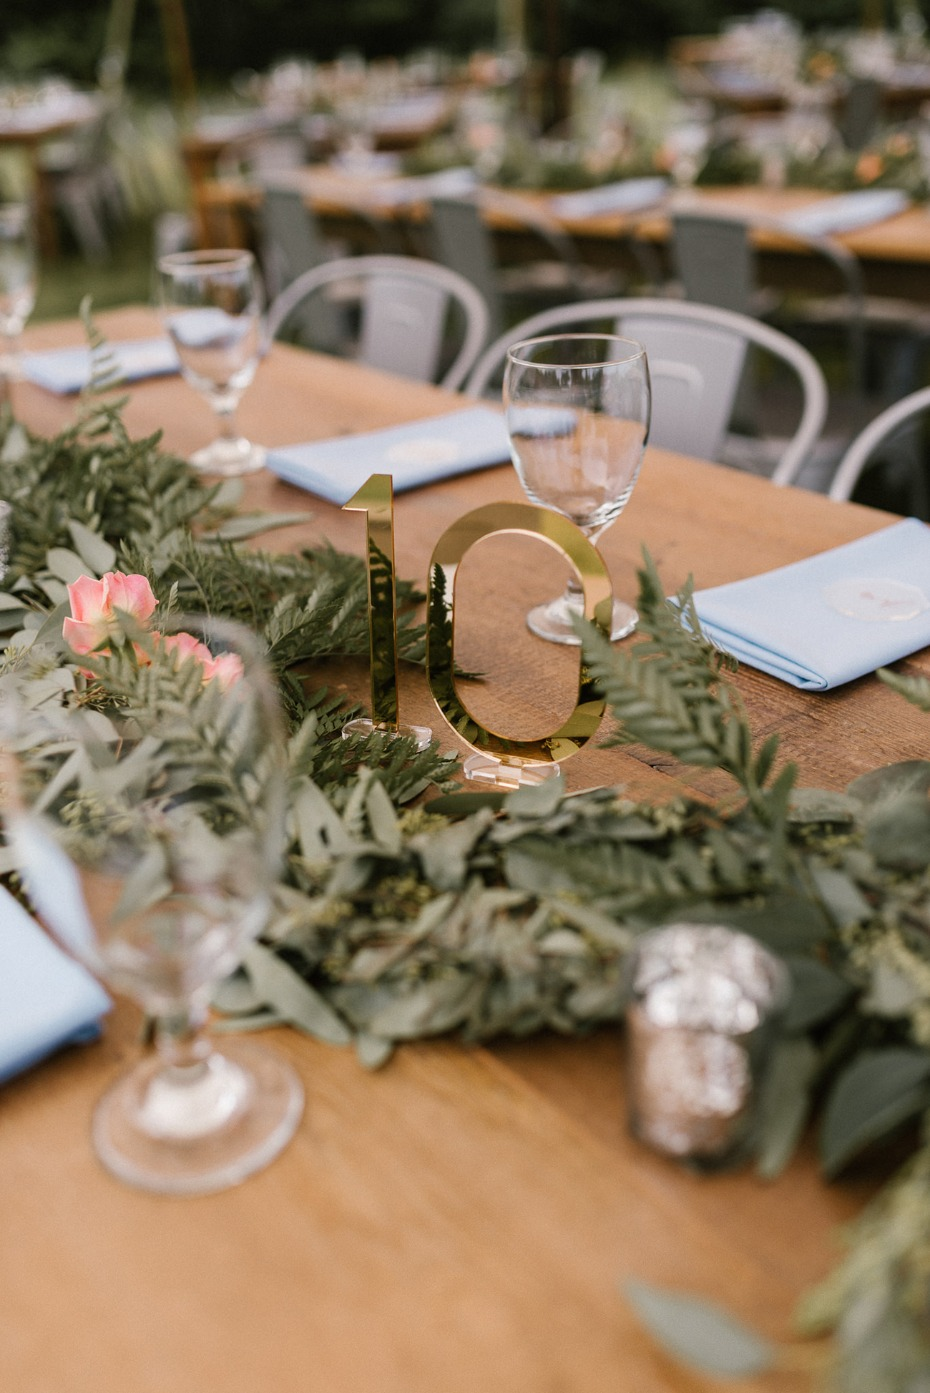 Mirror table number and greenery centerpiece